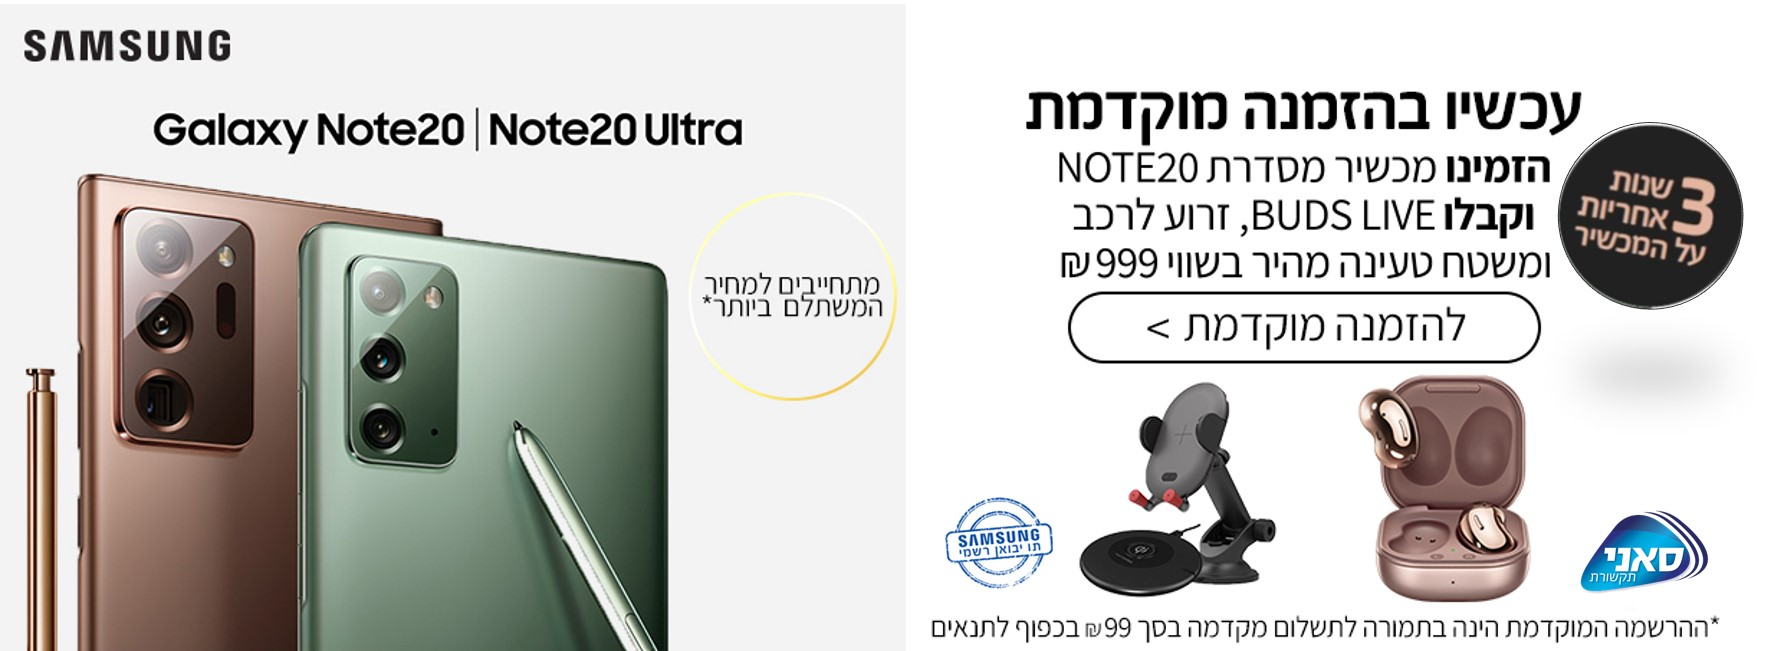 השקה GALAXY NOTE 20 | NOTE 20 ULTRA